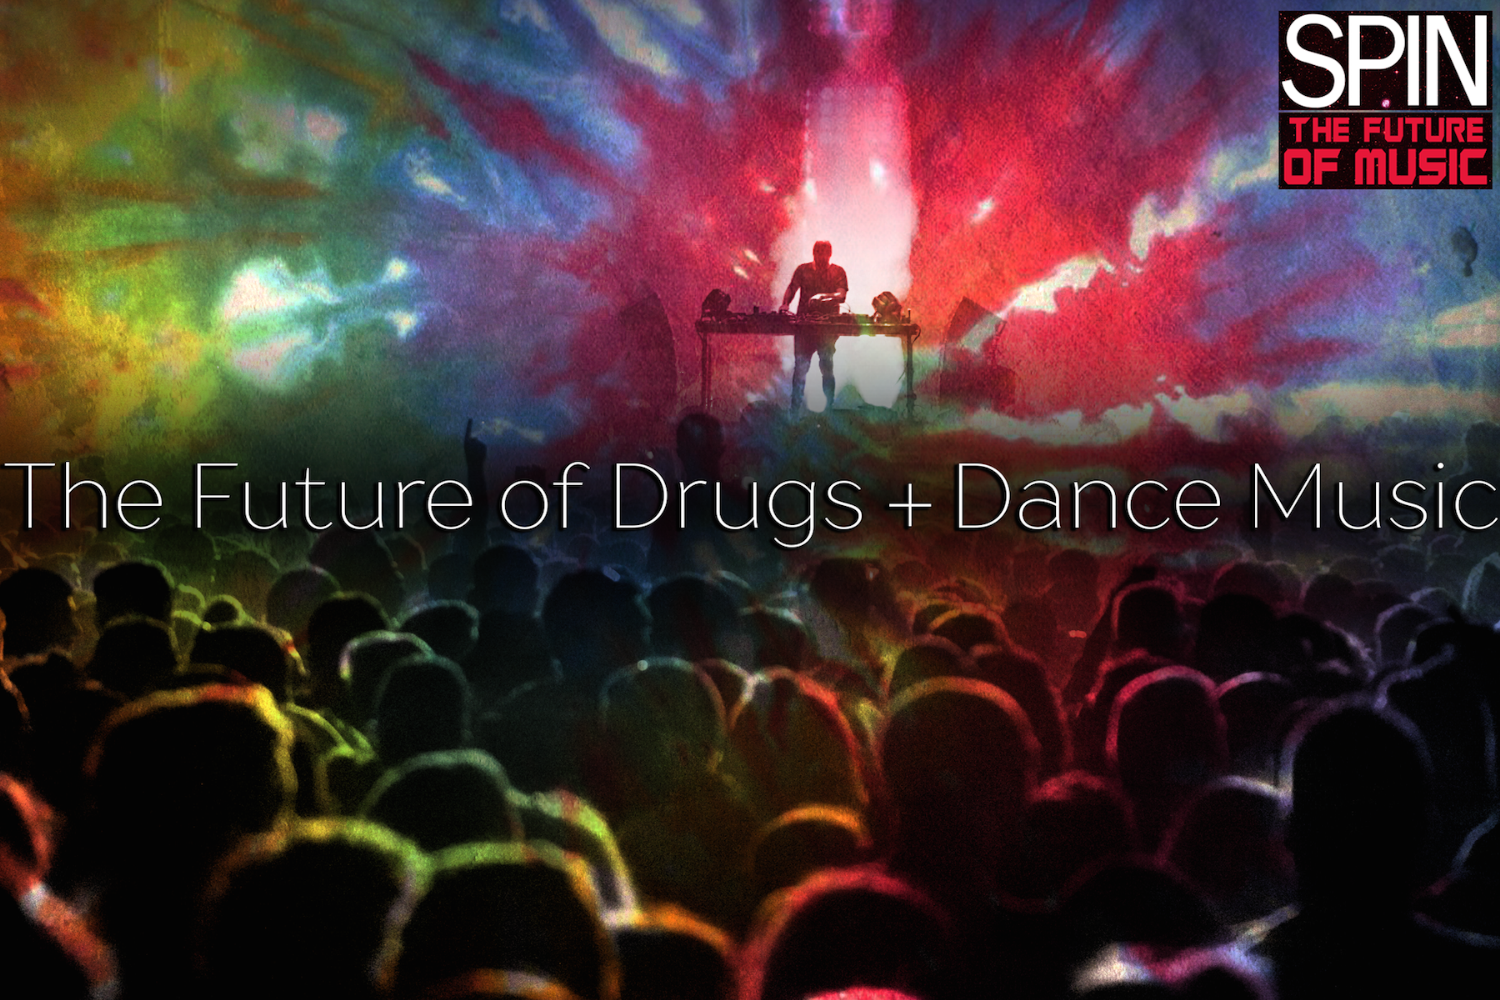 Ecstasy, Fake LSD, and Sort-Of Magic Mushrooms: The Future of Dance Music's Drugs